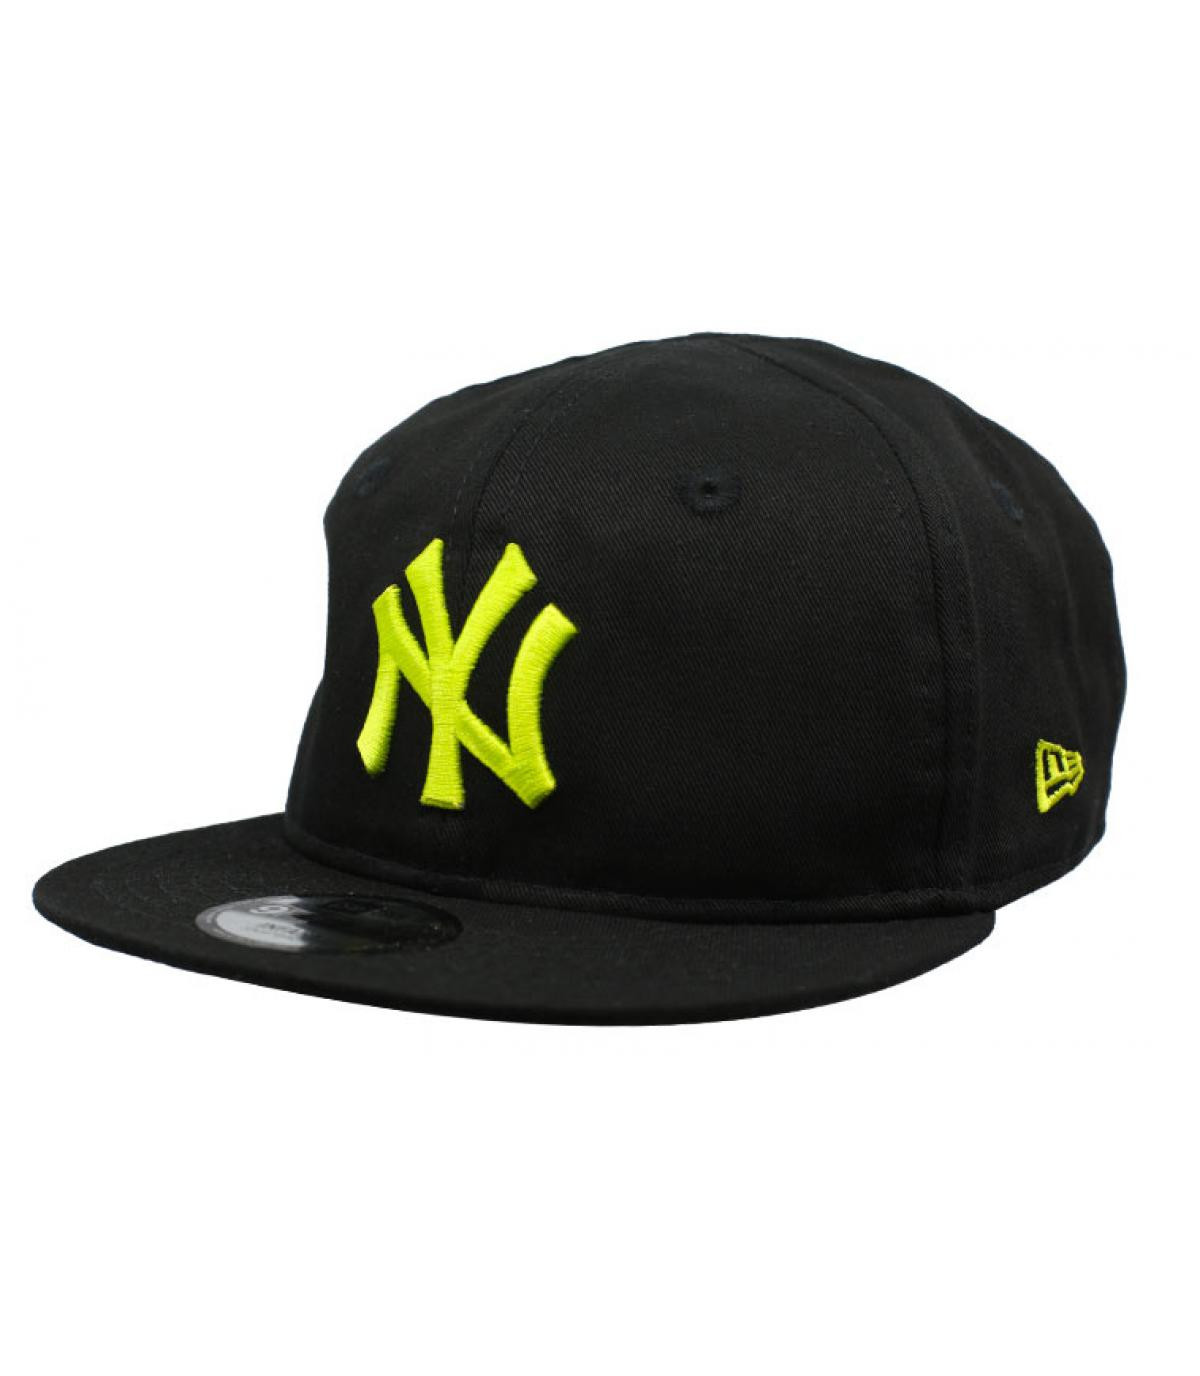 Détails Snapback Baby League Ess NY 9Fifty black cyber yellow - image 2